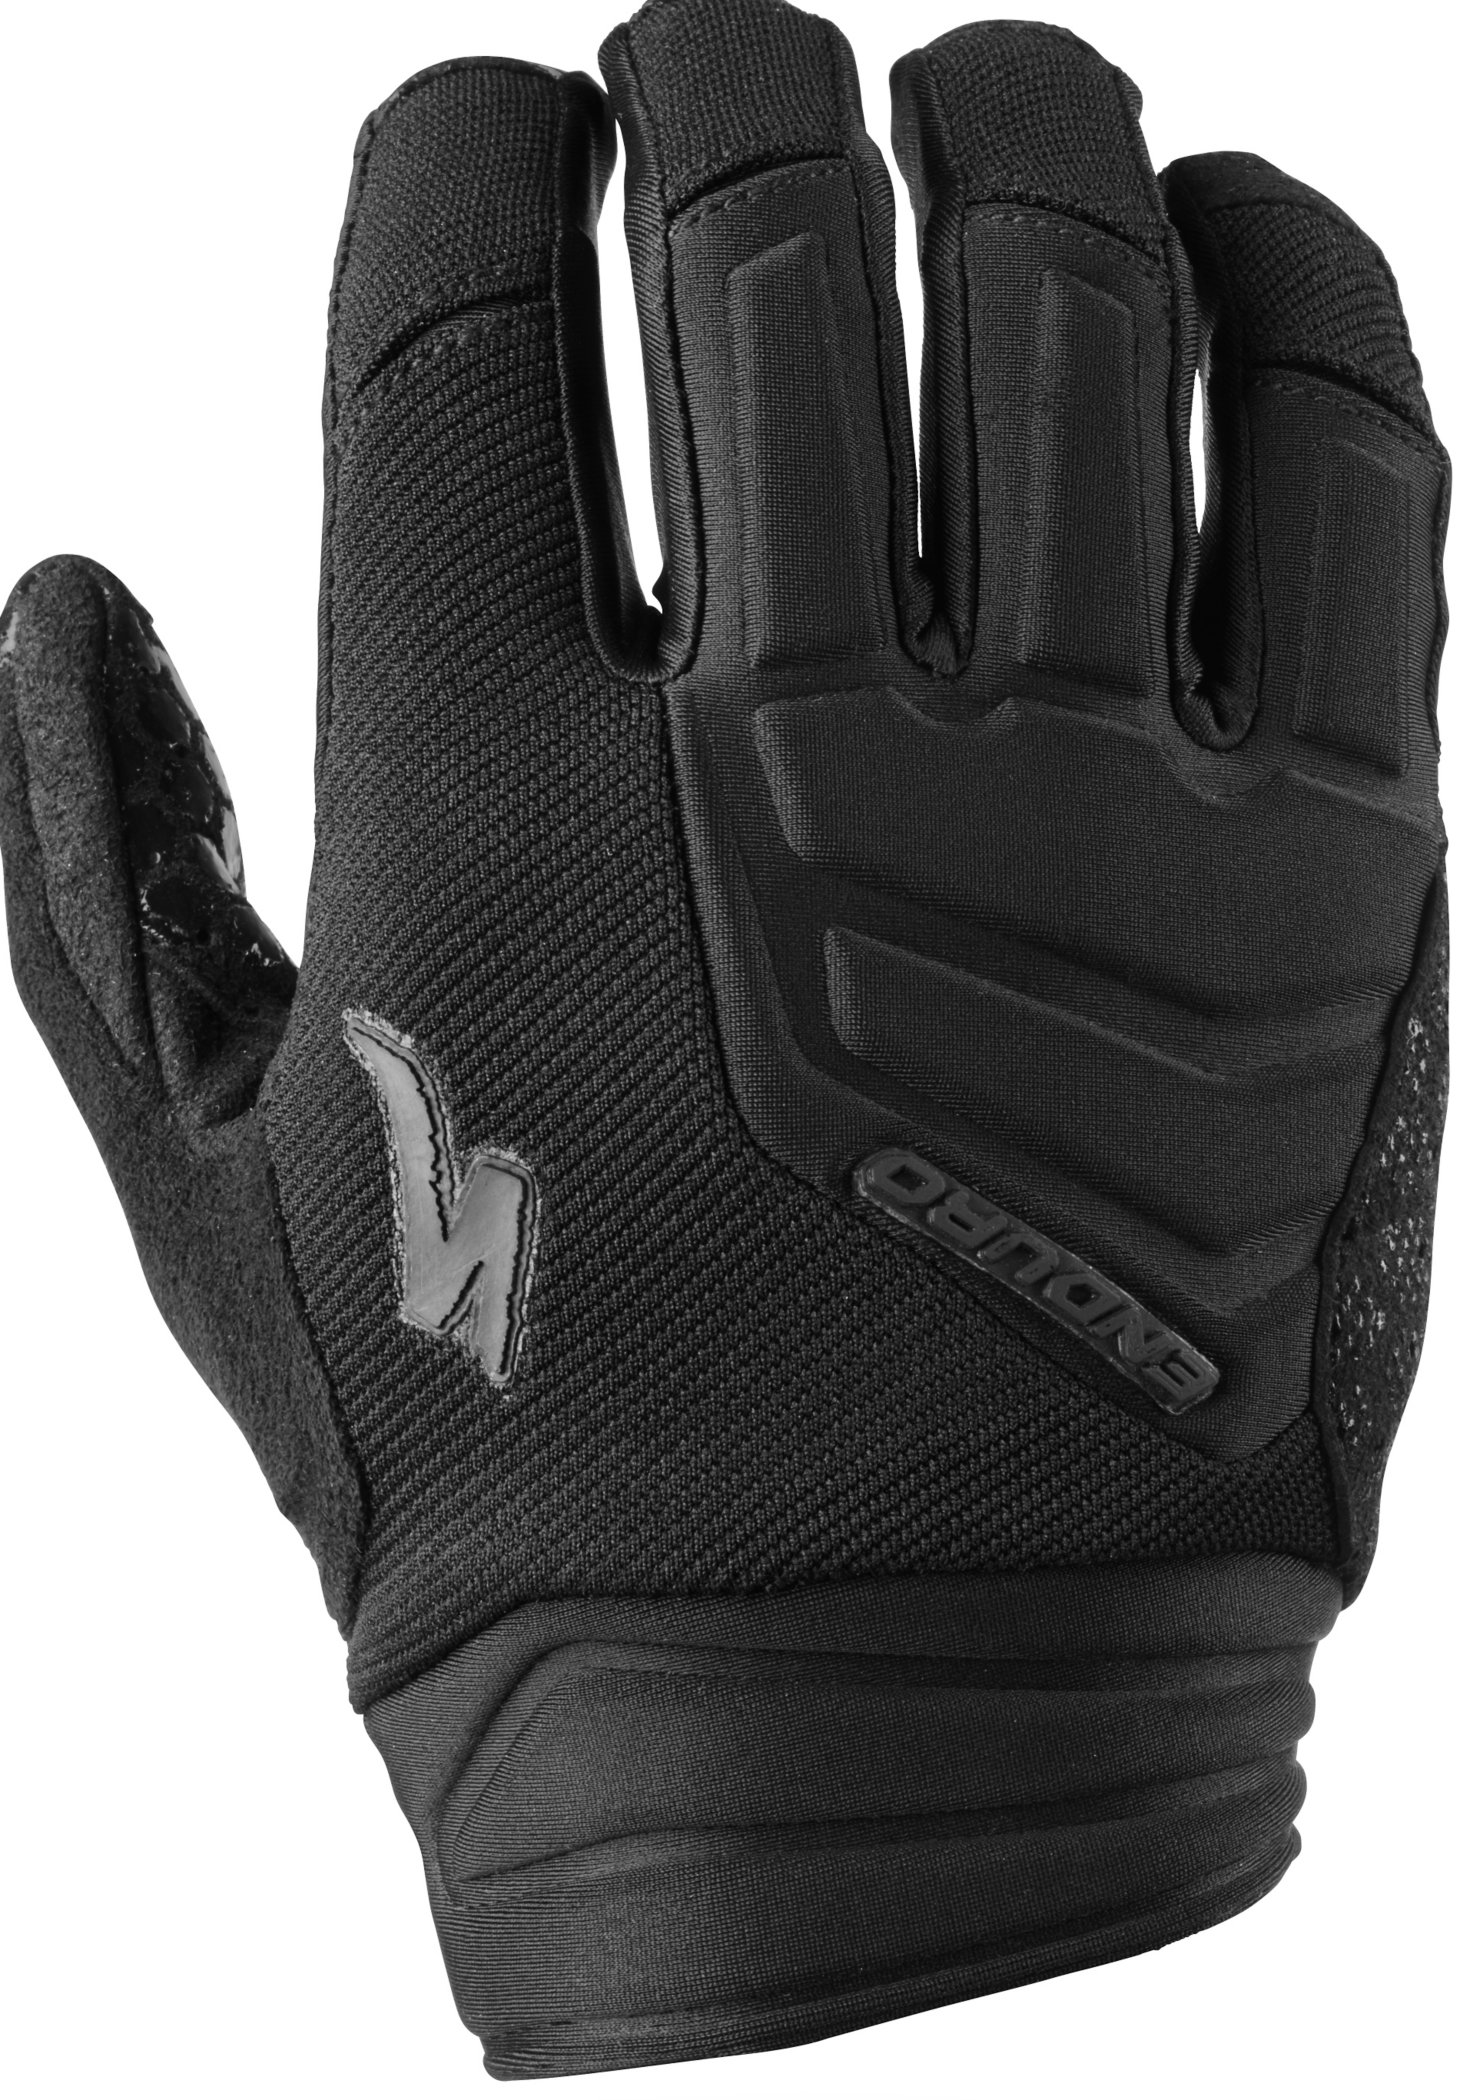 SPECIALIZED ENDURO GLOVE LF BLK L - Alpha Bikes